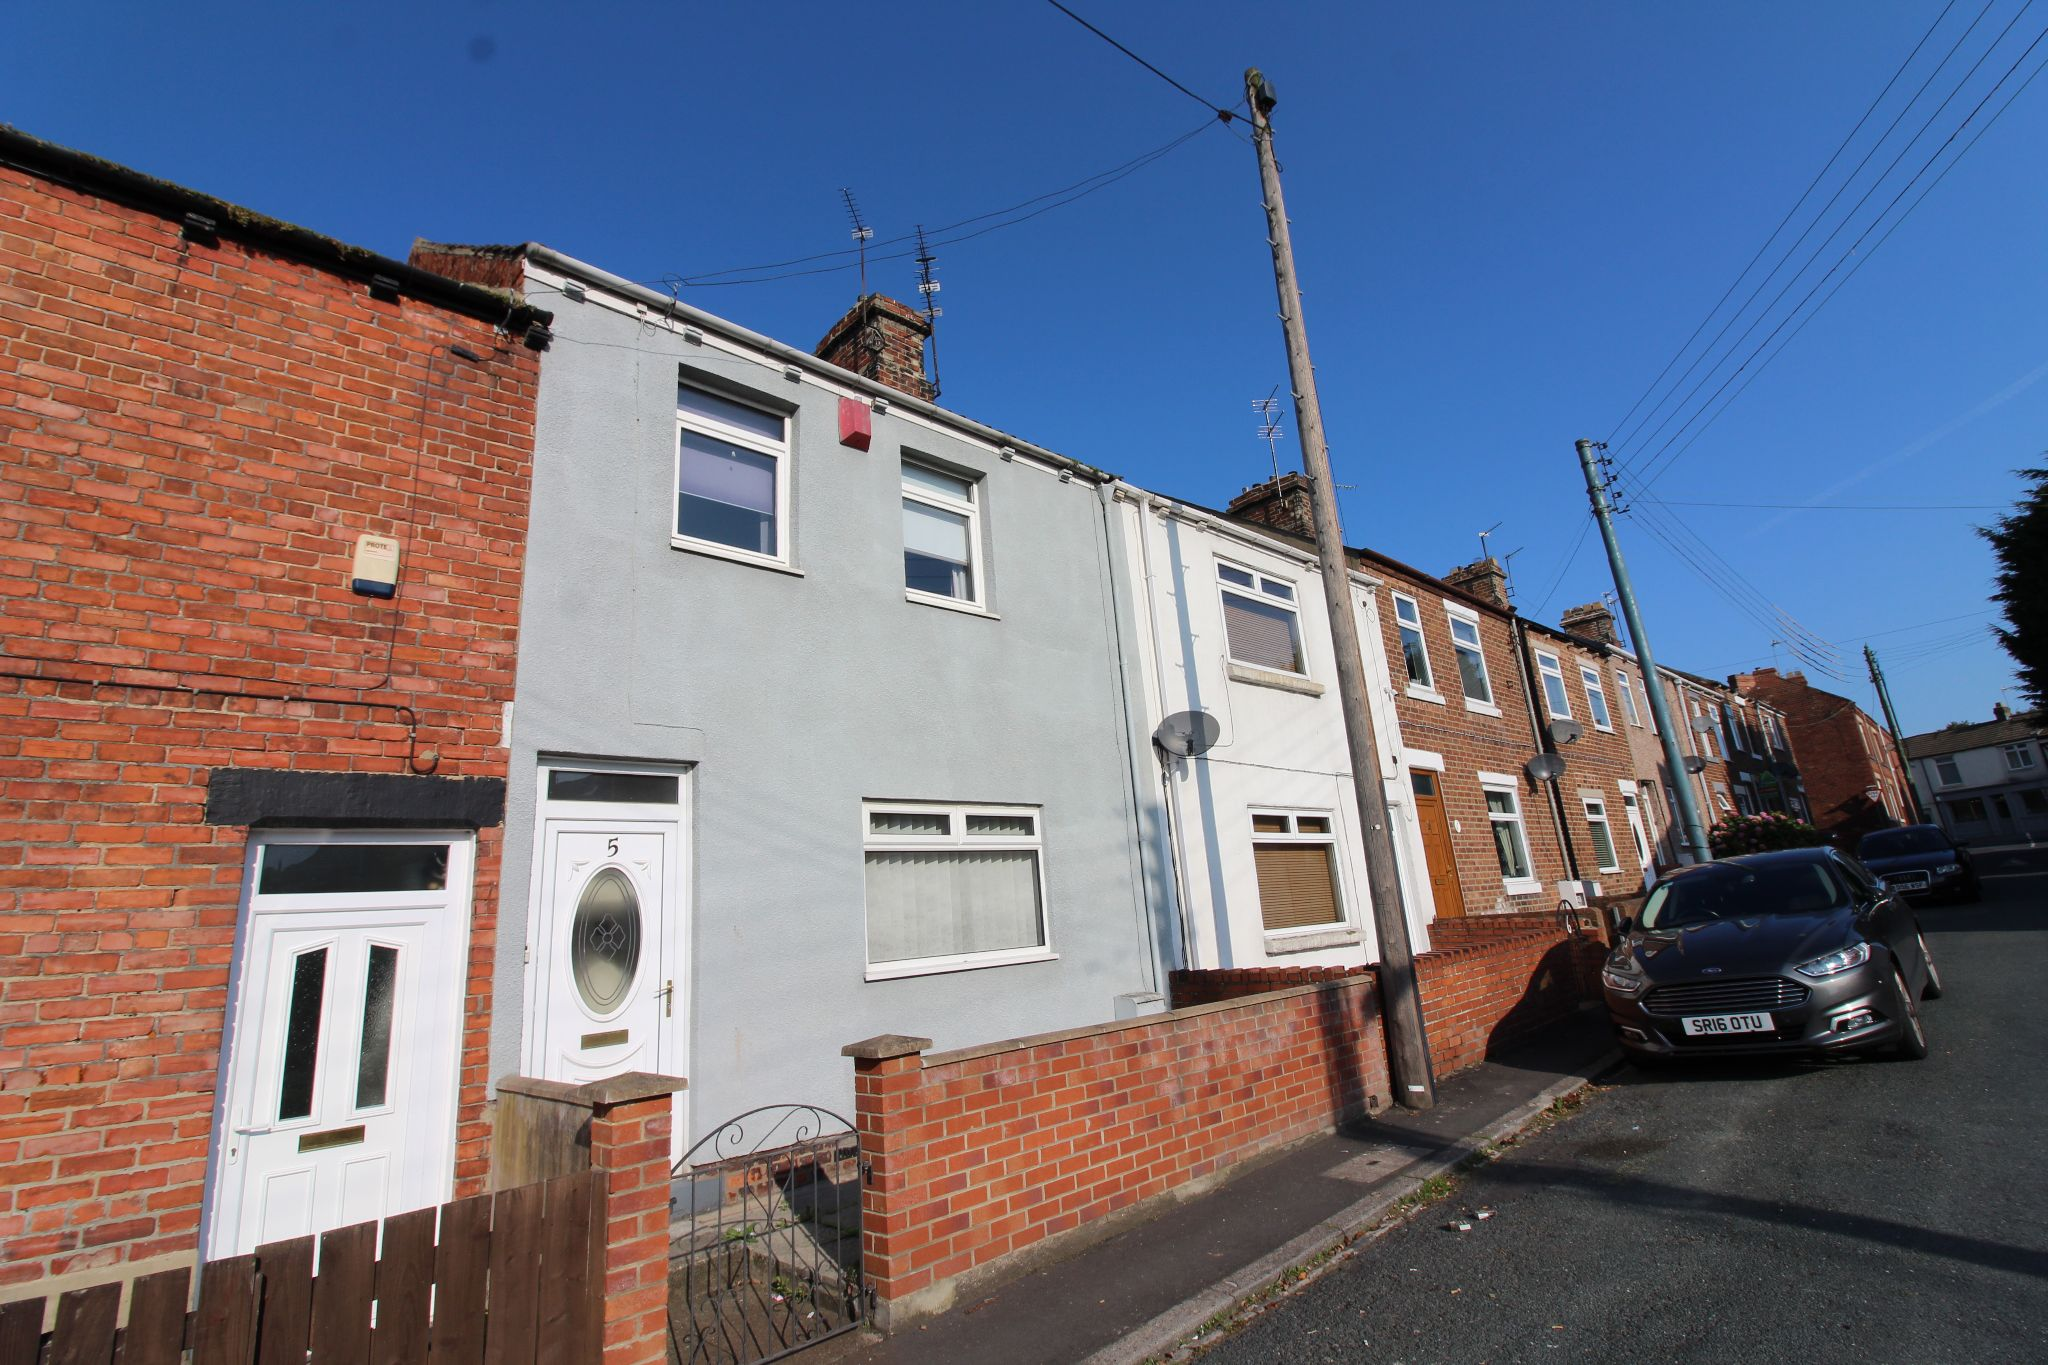 3 bedroom mid terraced house To Let in Willington - Photograph 1.